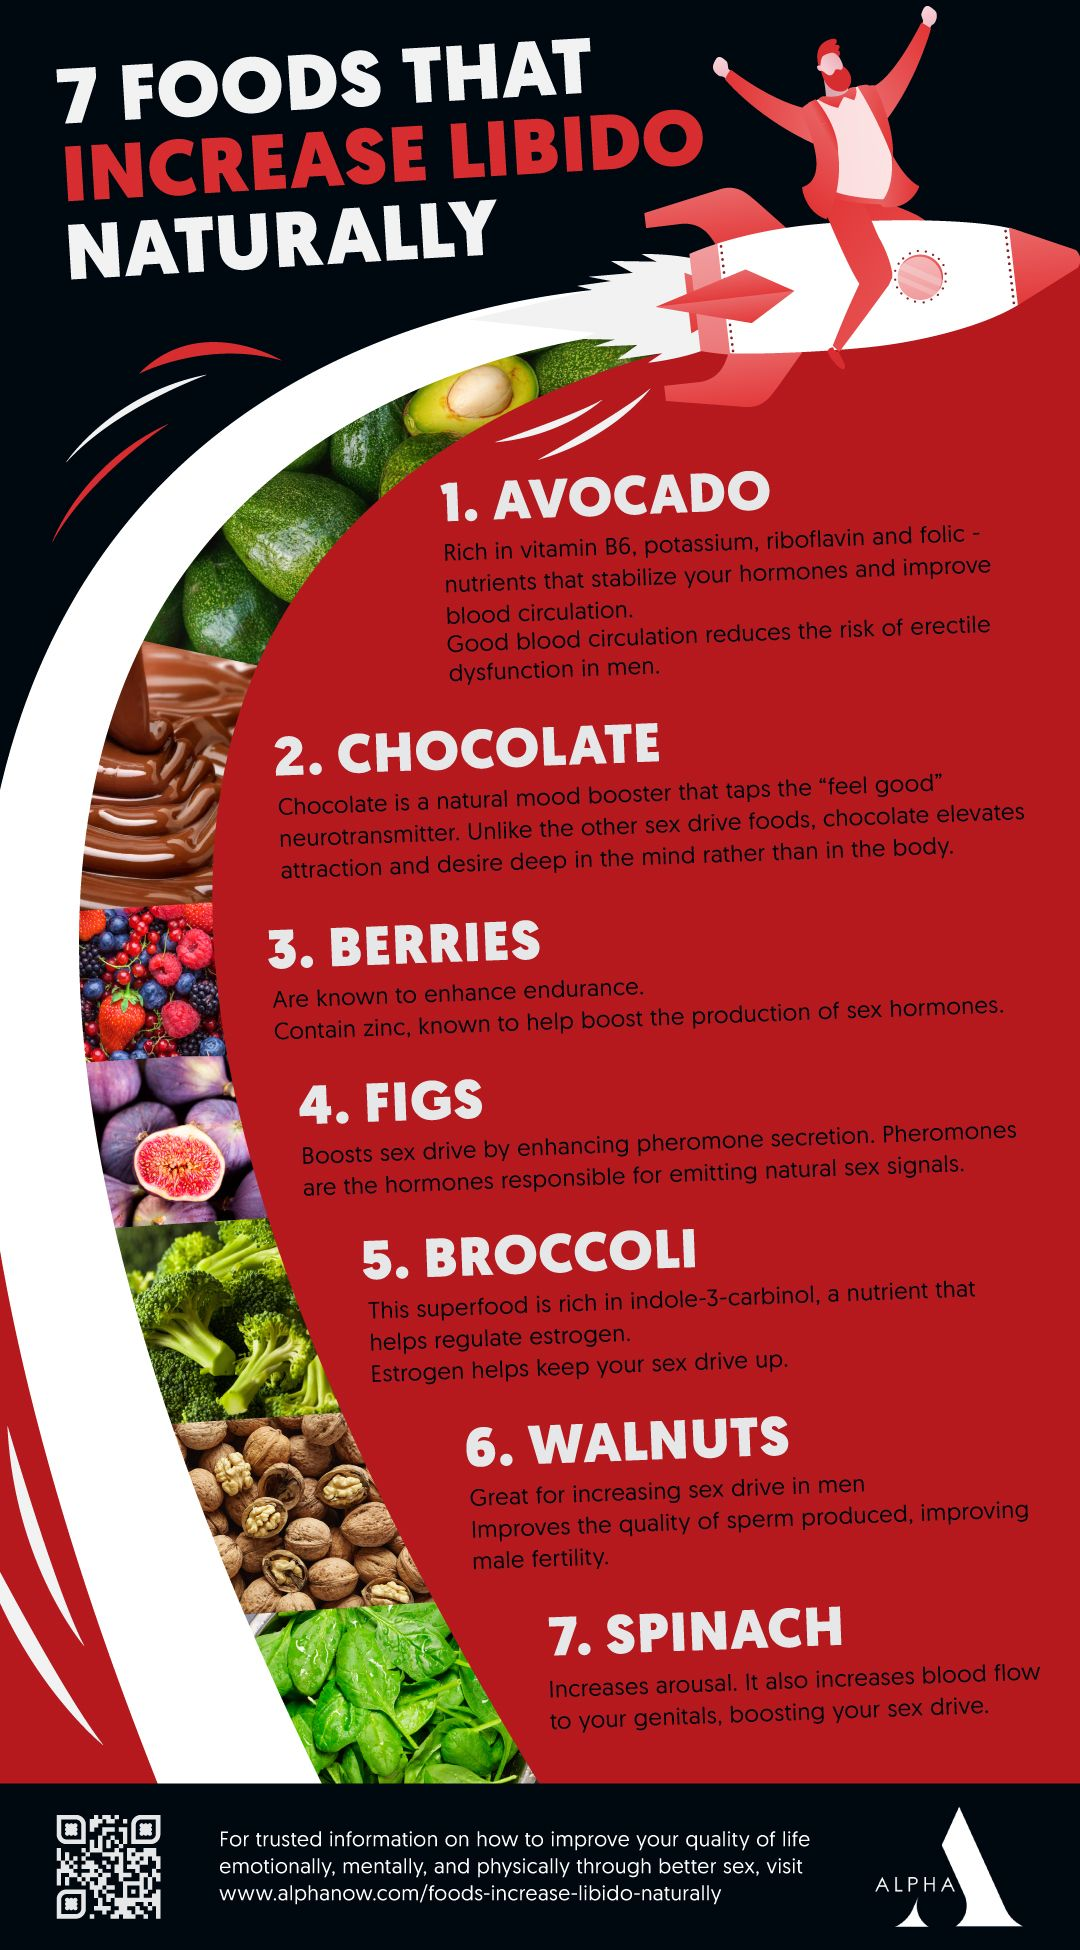 13 Foods That Increase Libido Naturally [INFOGRAPHIC]